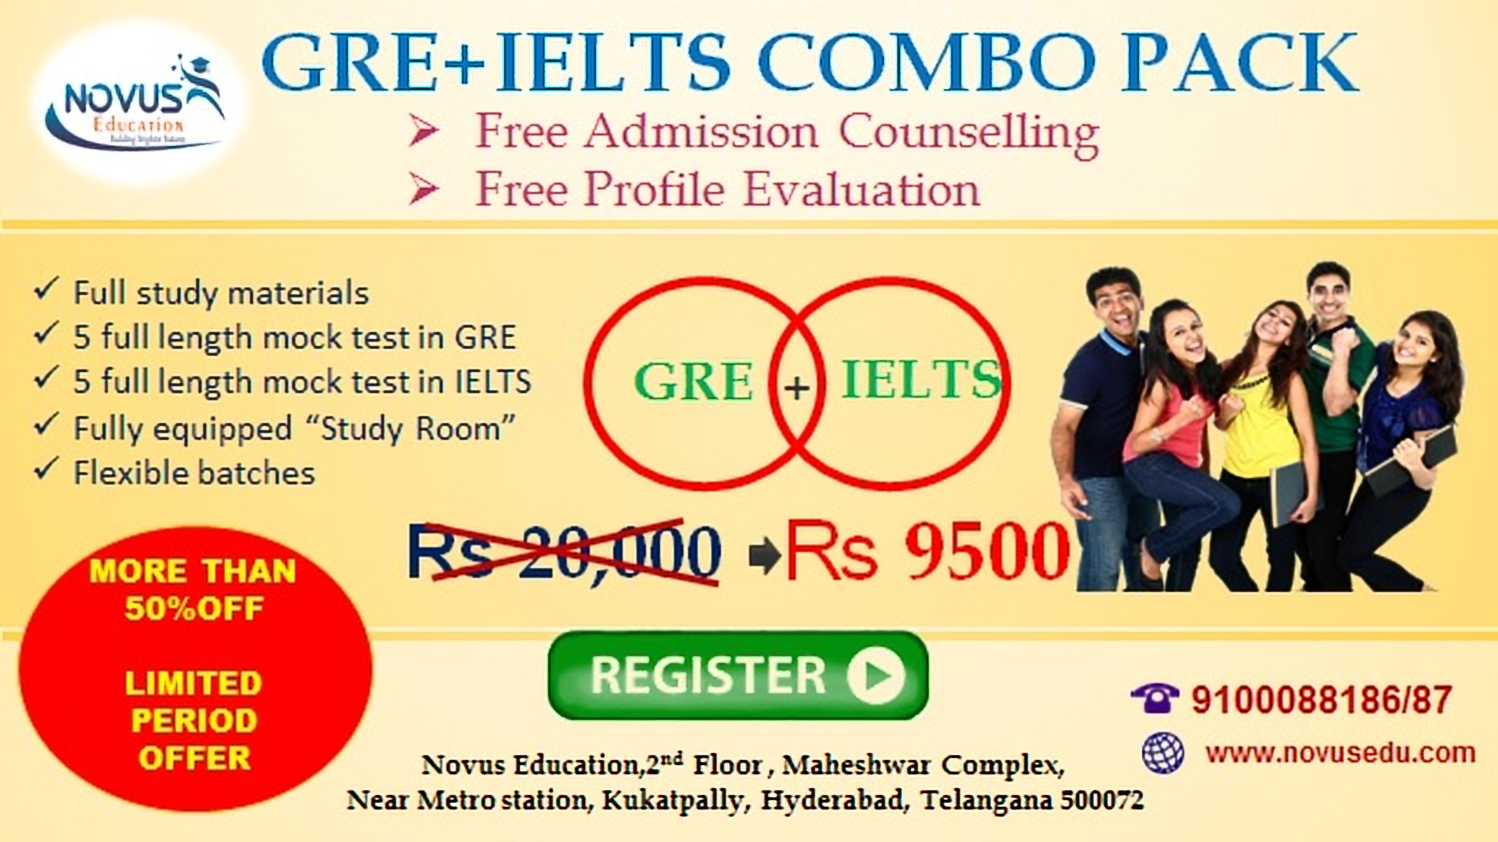 GRE AND IELTS COMBO PACK